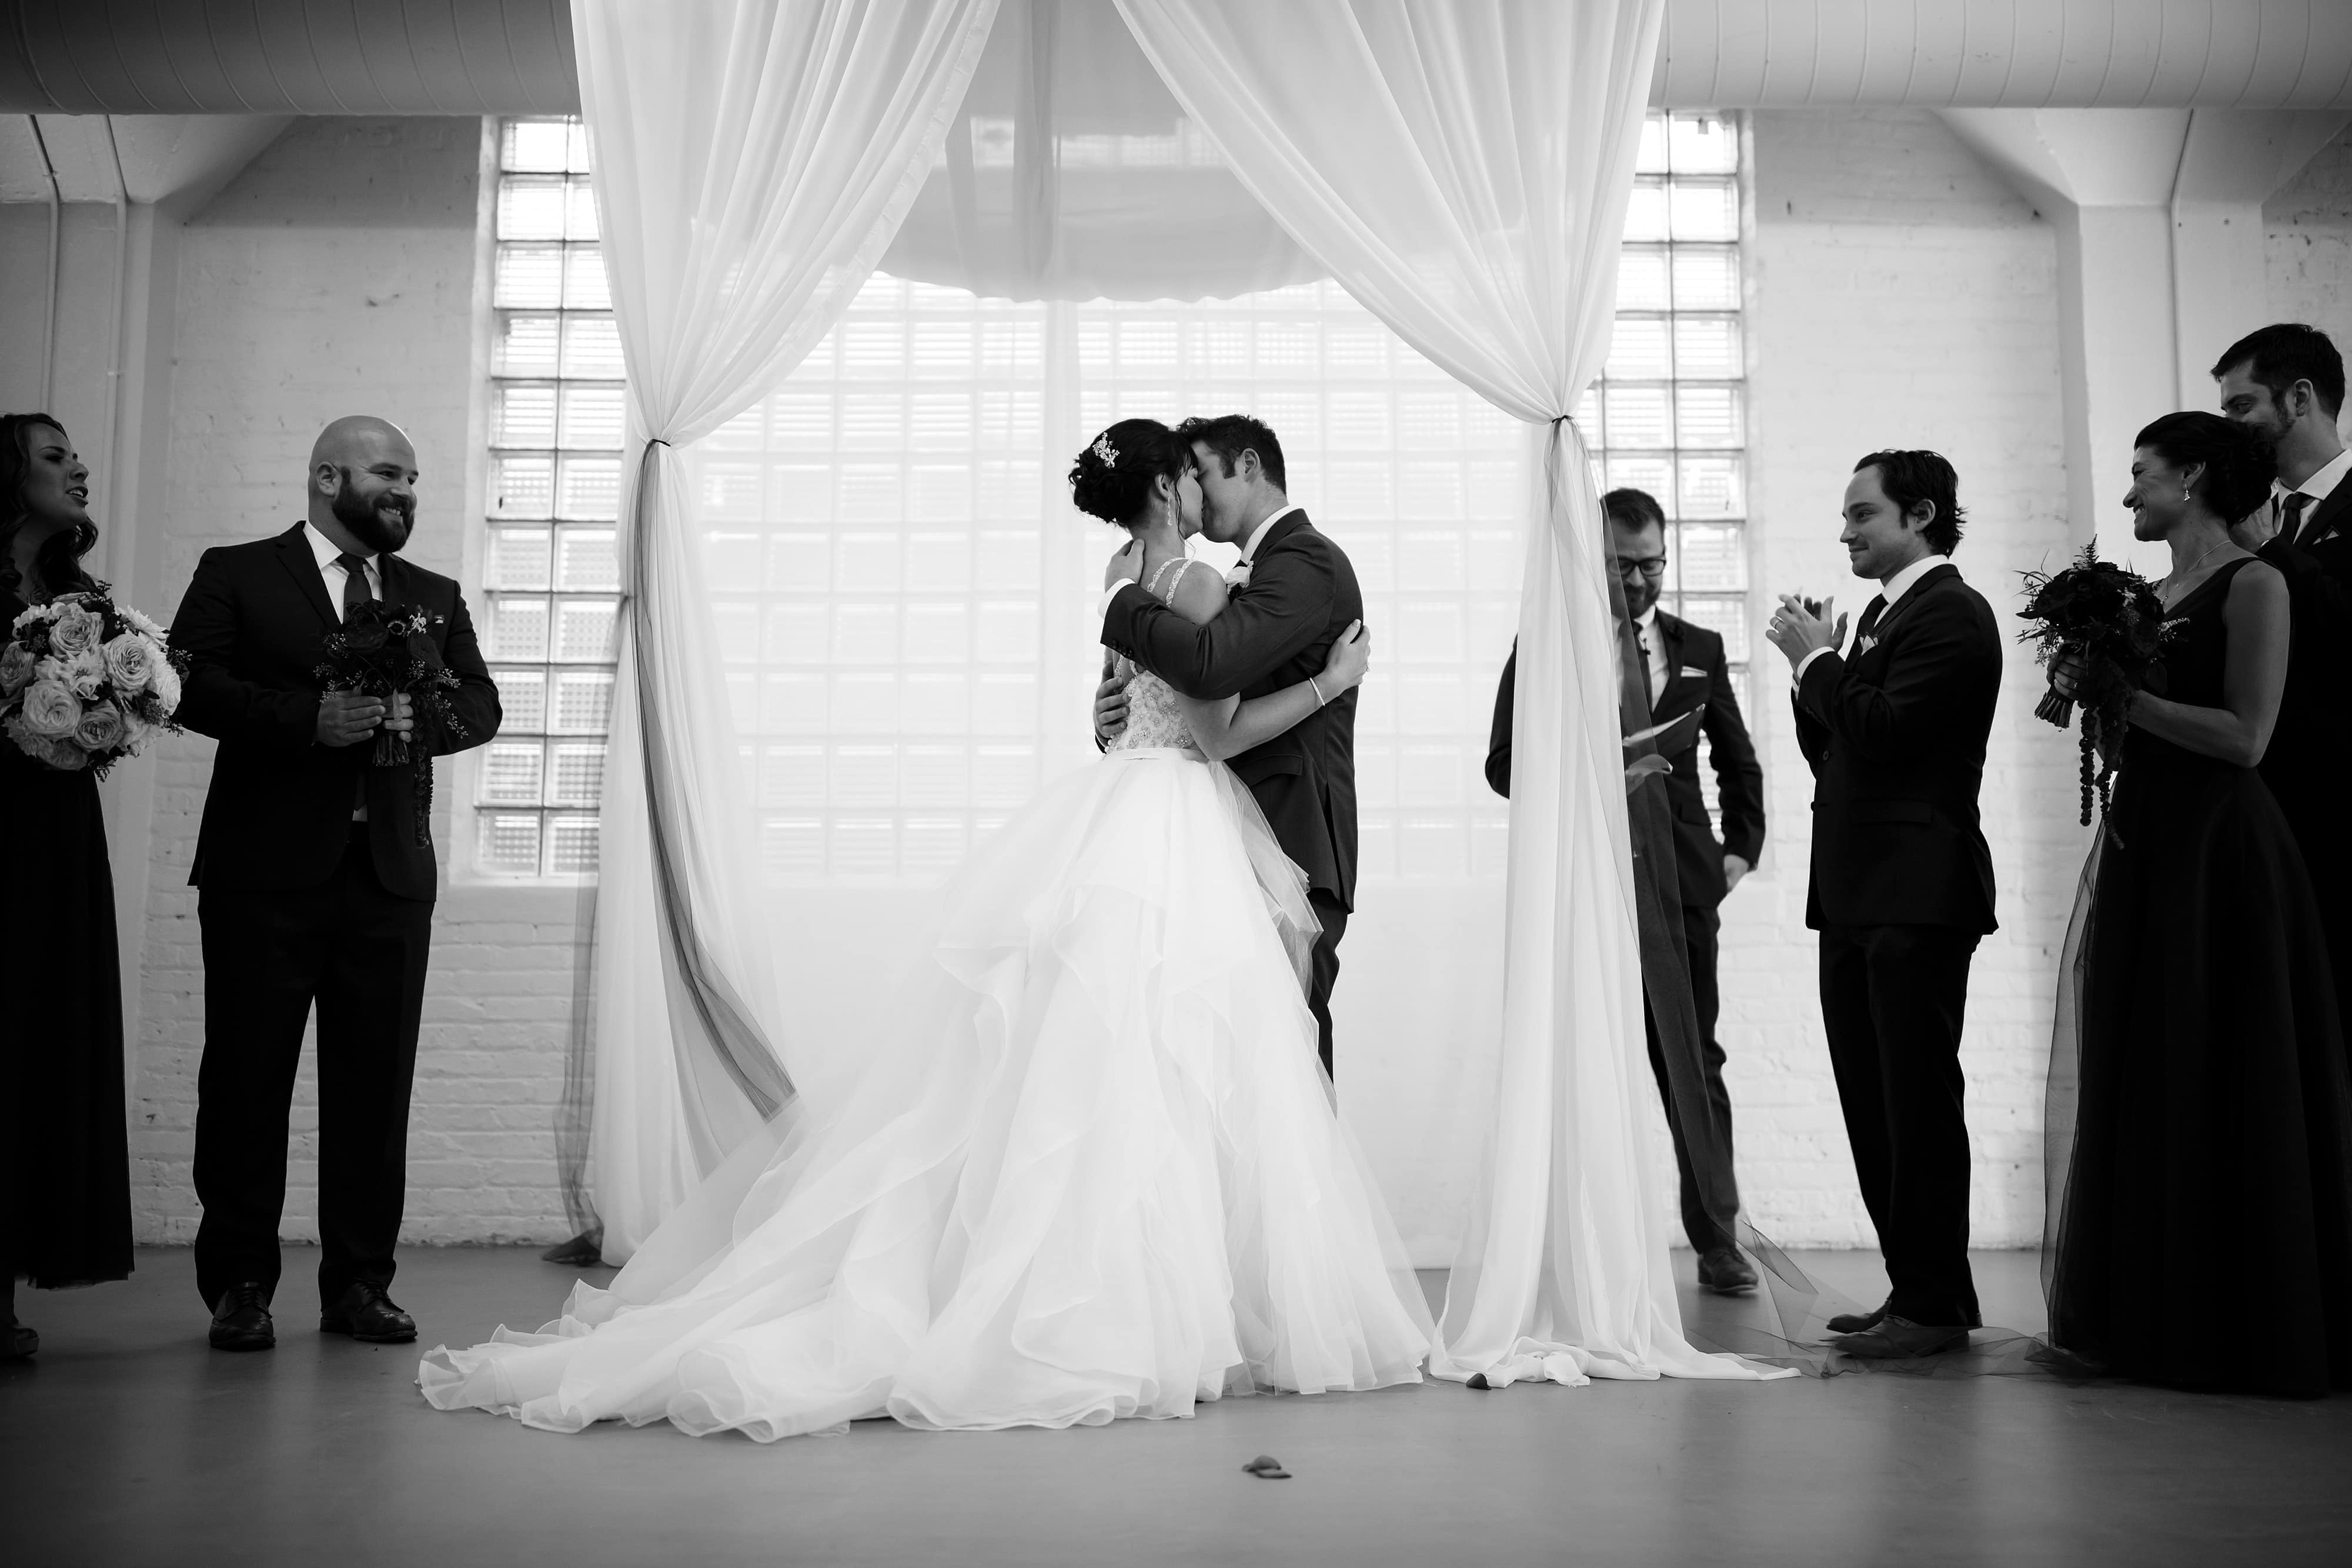 The couple kiss during their ceremony